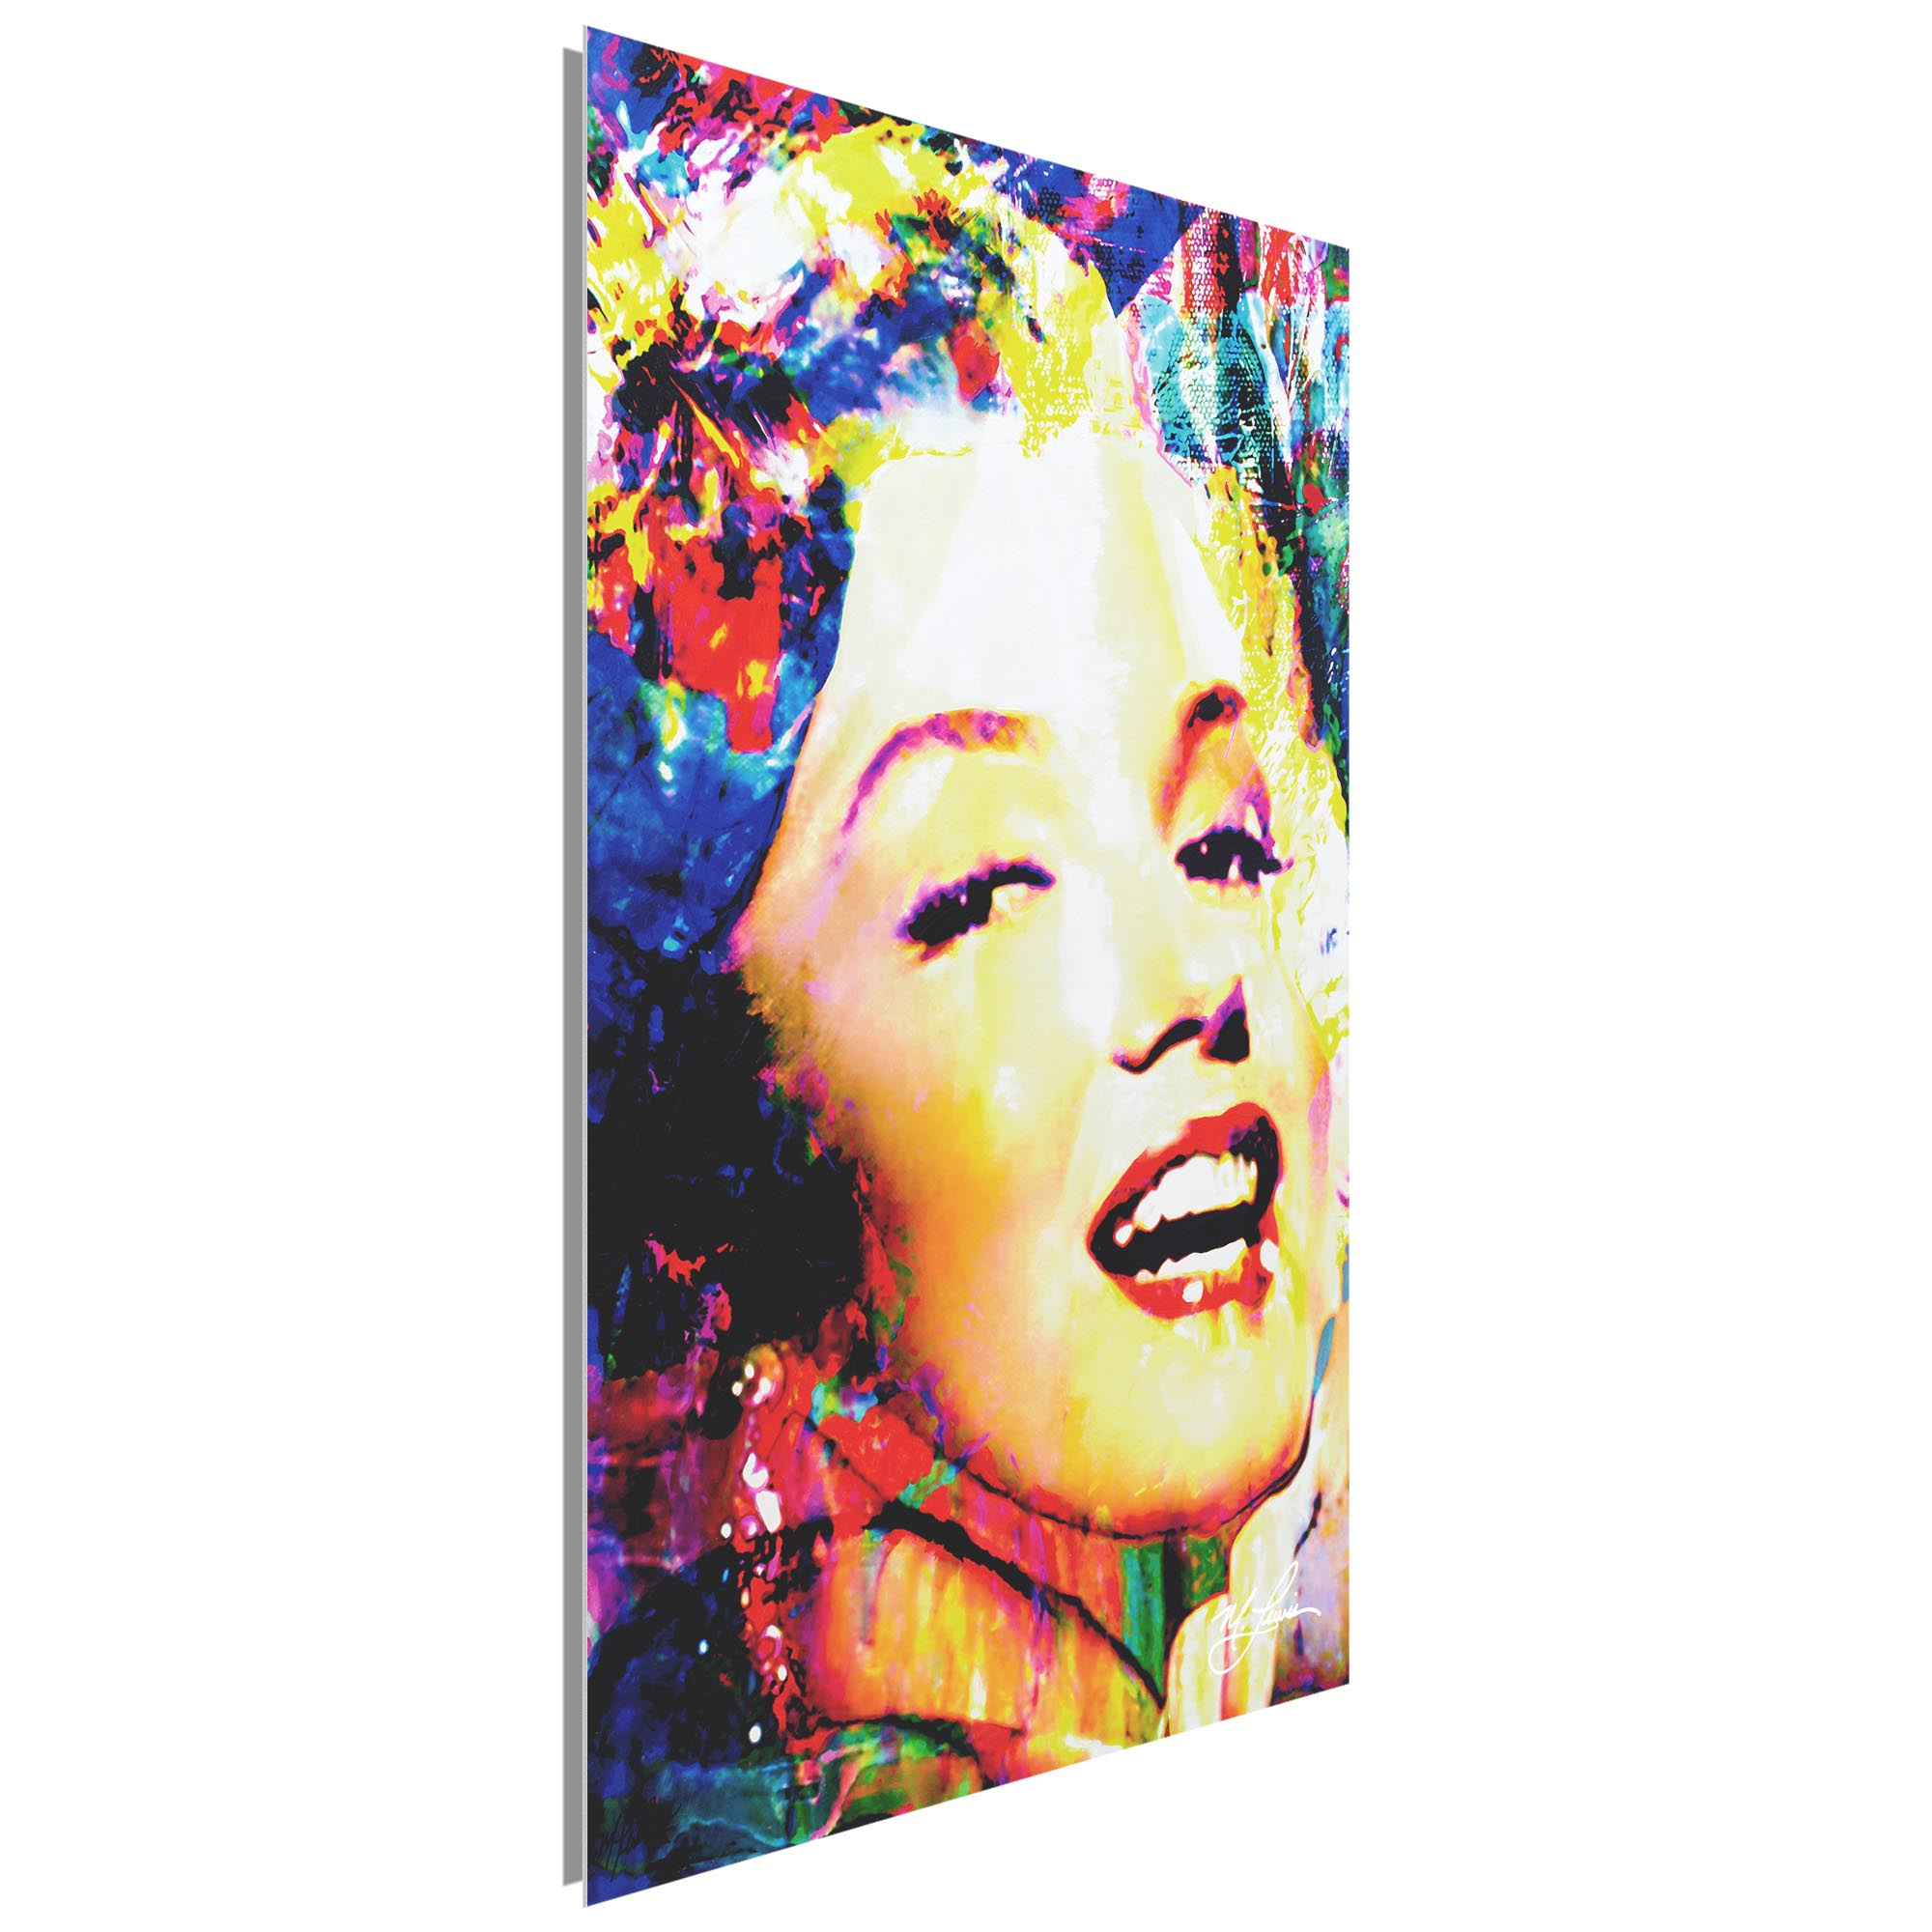 Marilyn Monroe Marilyn Bee 22x32 Metal or Plexiglass Pop Art Portrait - Image 2